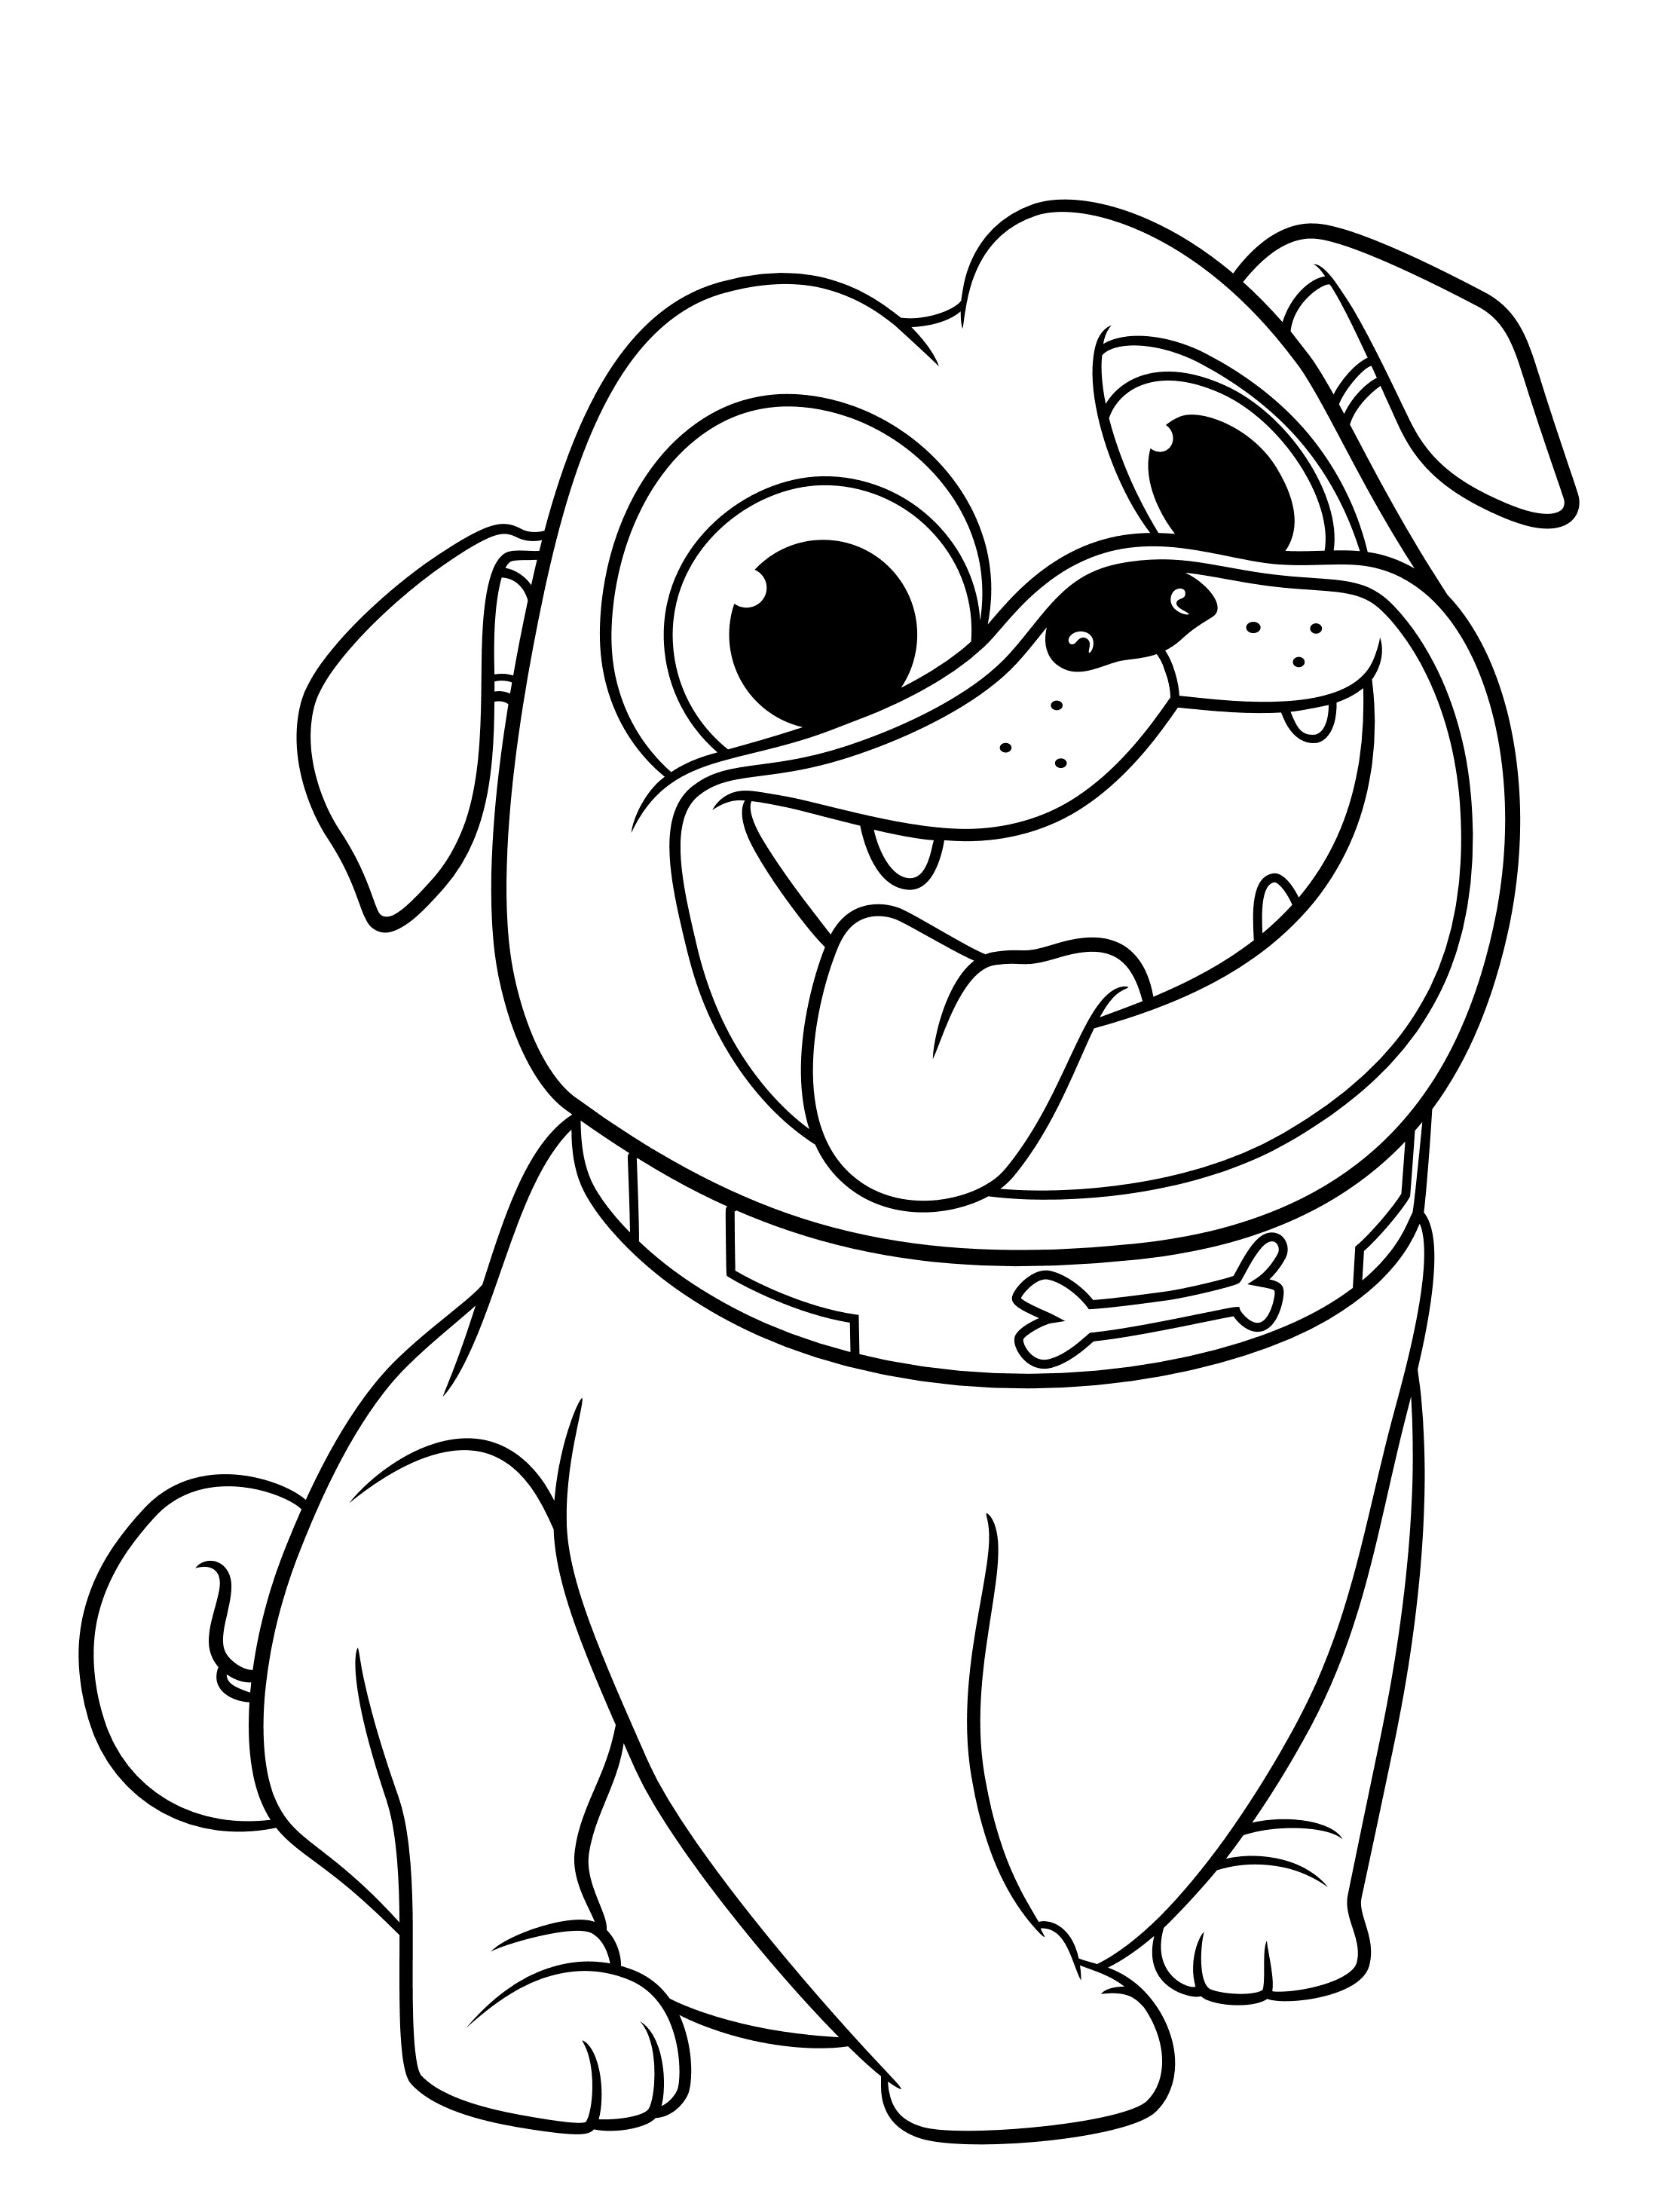 dog coloring pages free puppy dog pals coloring pages to download and print for free dog pages coloring free